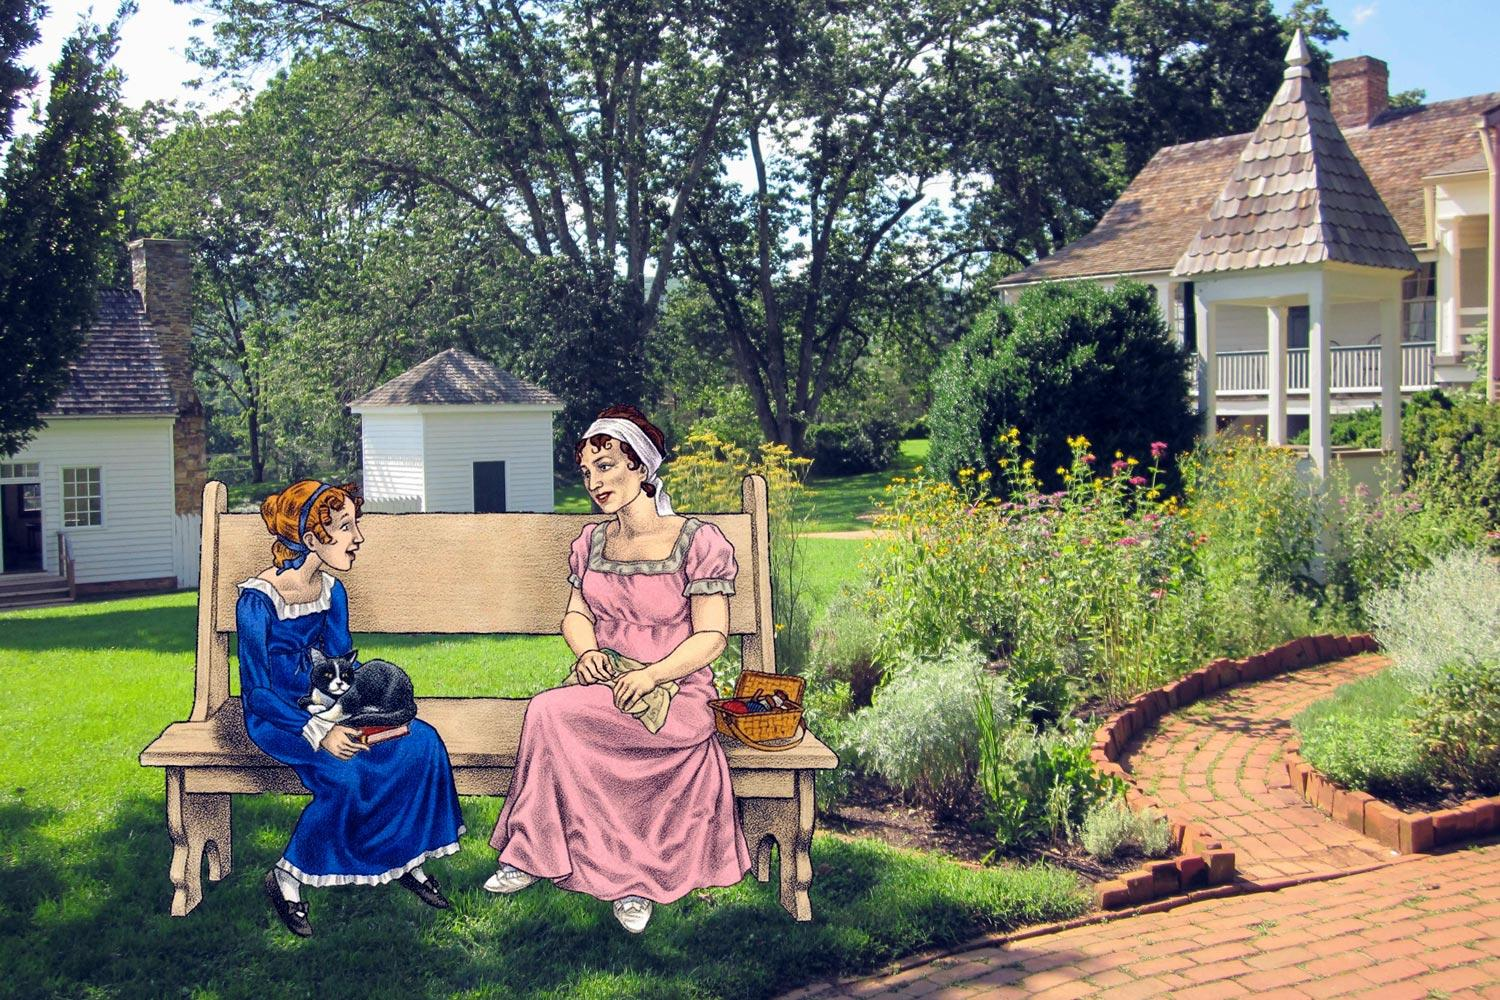 The new tours feature illustrations of James Monroe, his wife and granddaughter and the enslaved families that lived and worked at Highland.